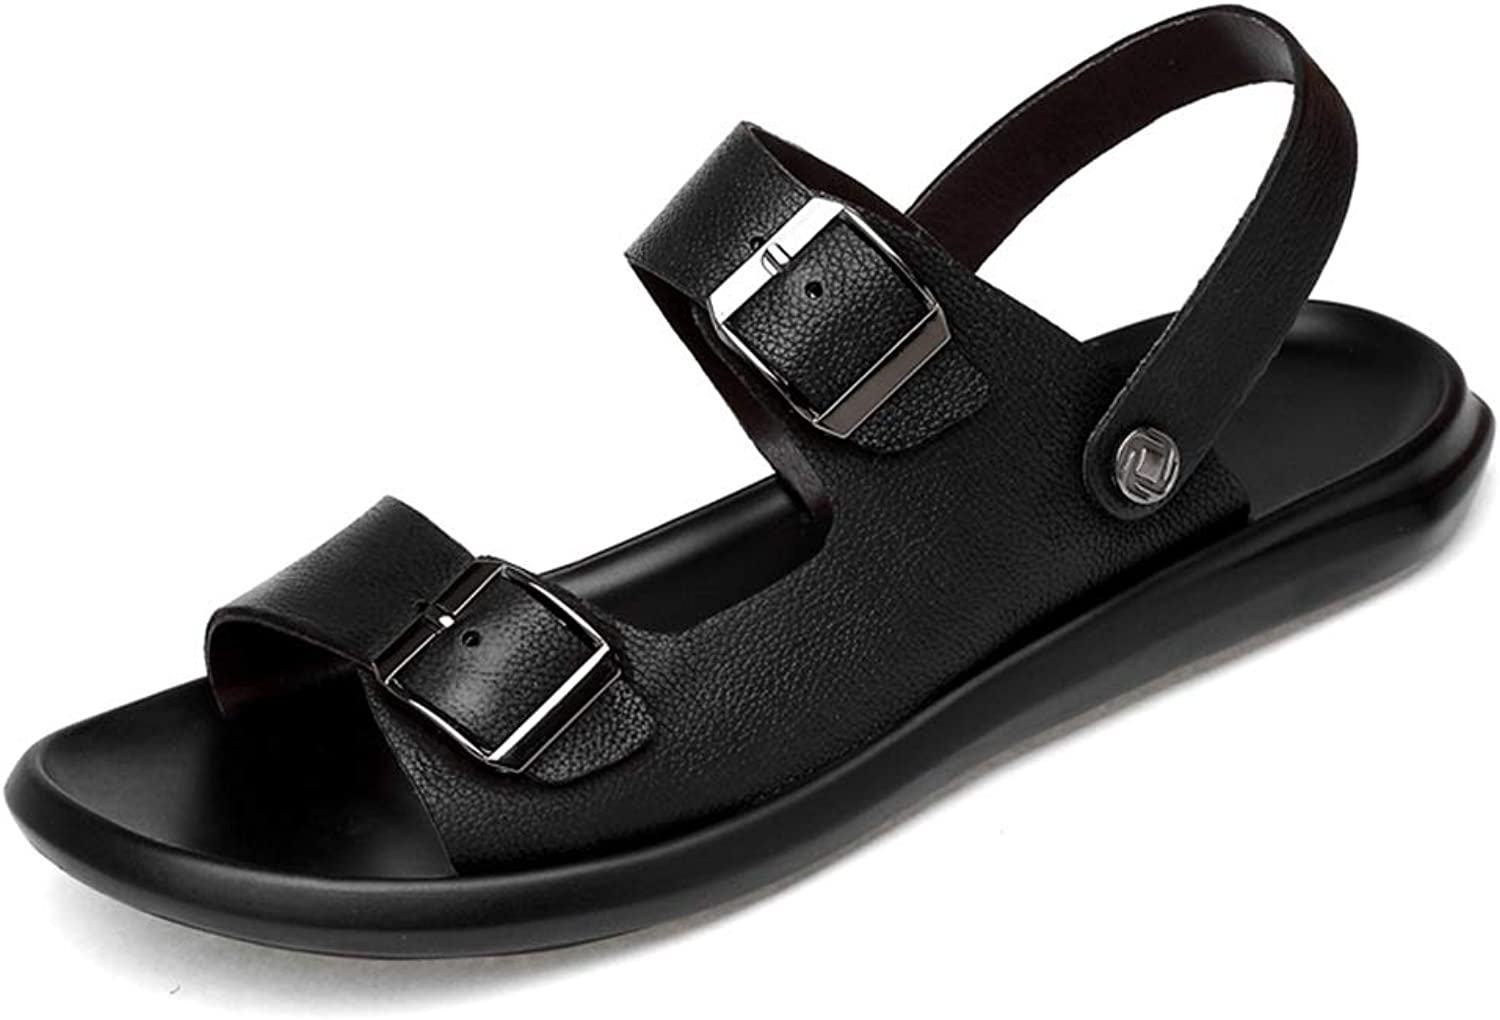 Cvbndfe Men's Flat Sandal Soft Leather Sandals Anti-slip Flat Waterproof Quick-drying Round Open Toe Buckle Lightweight Summer Beach shoes Stable&Safe (color   Black, Size   8.5 UK)